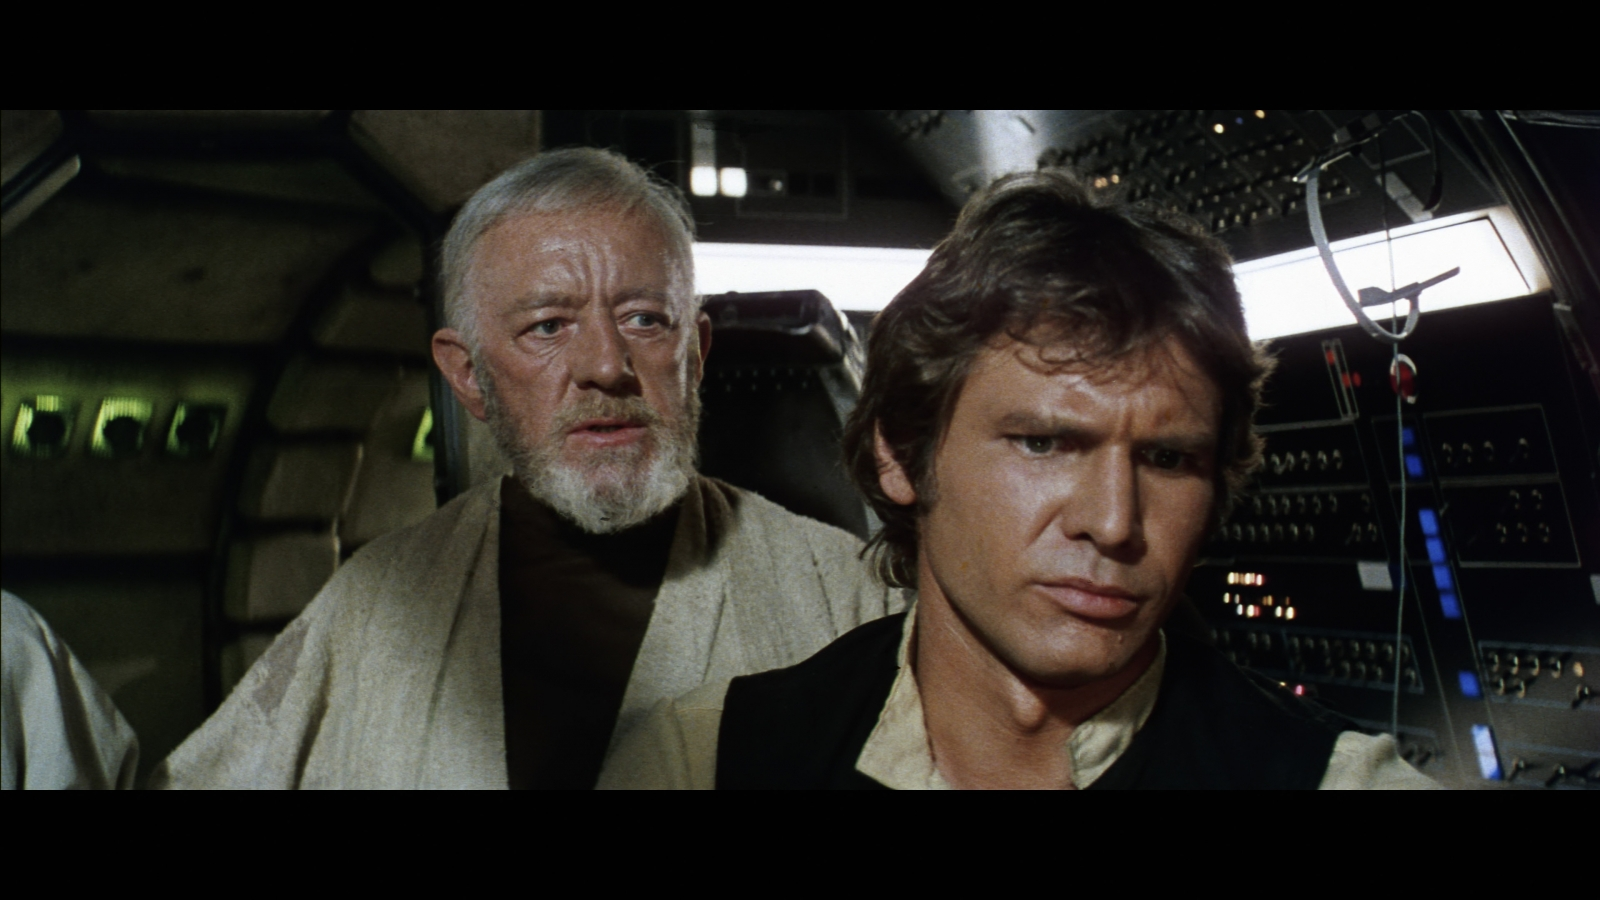 Star Wars 4K77 - General Discussion - Emby Community